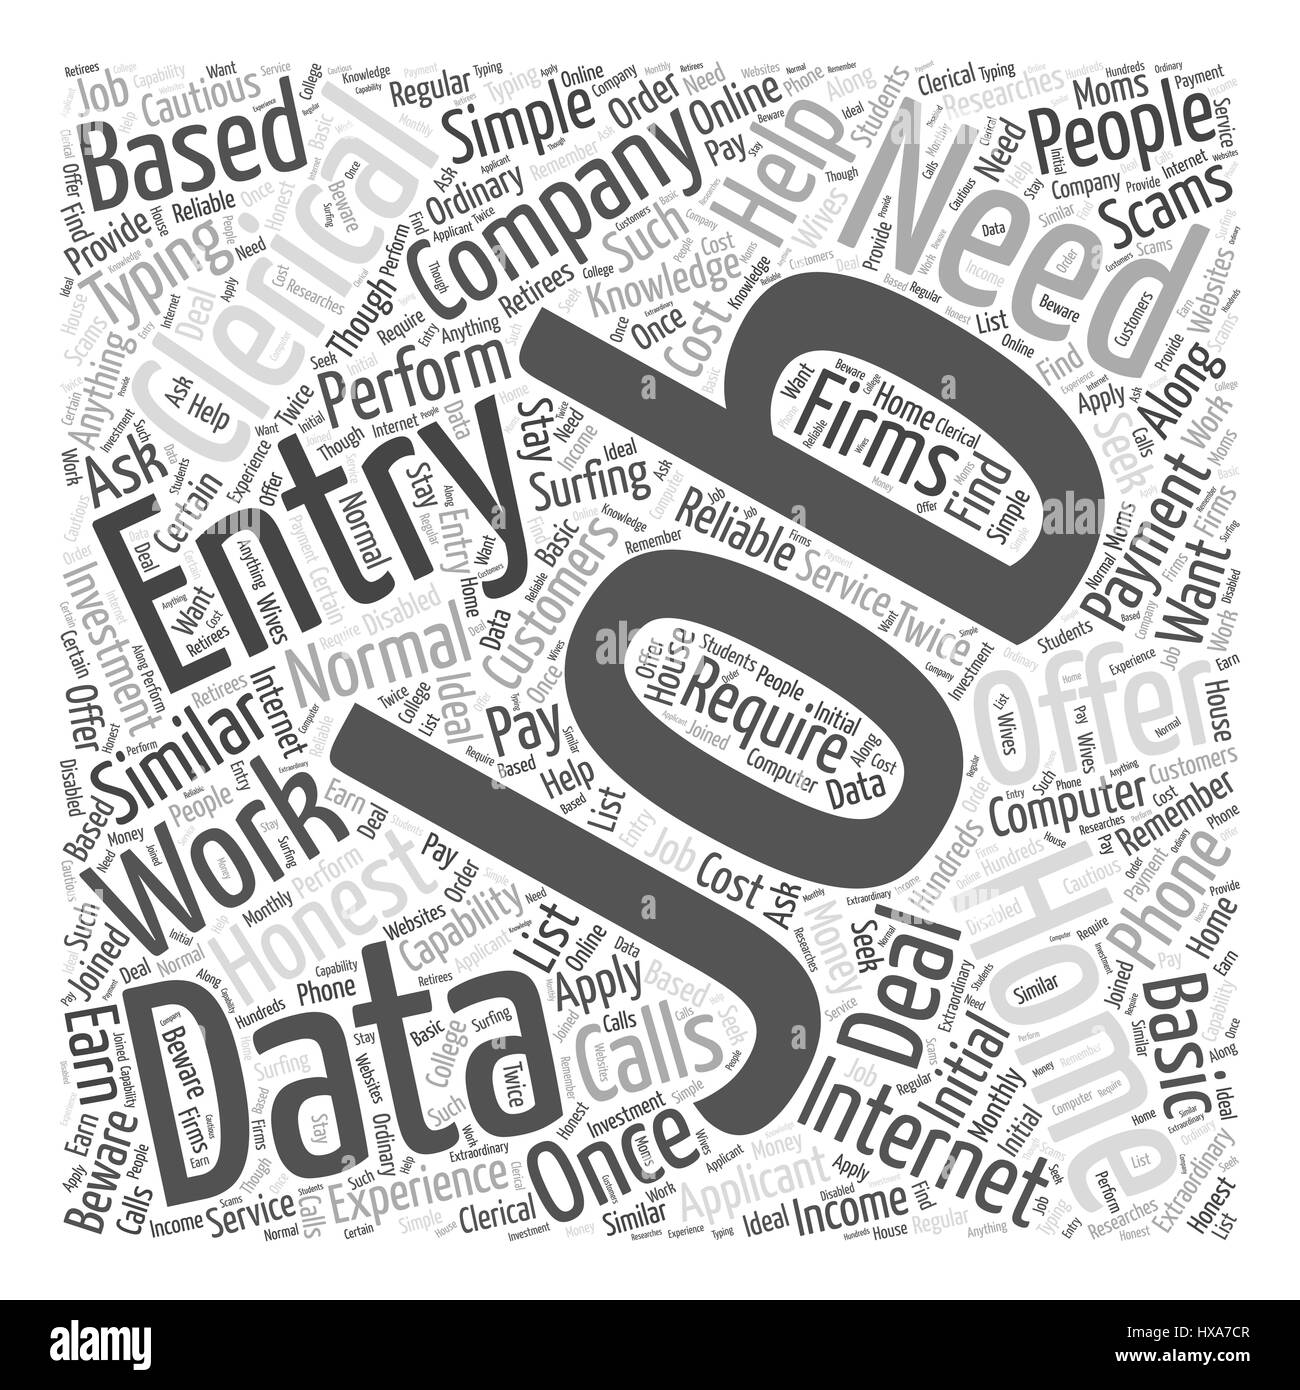 clerical data entry from home work word cloud concept stock vector